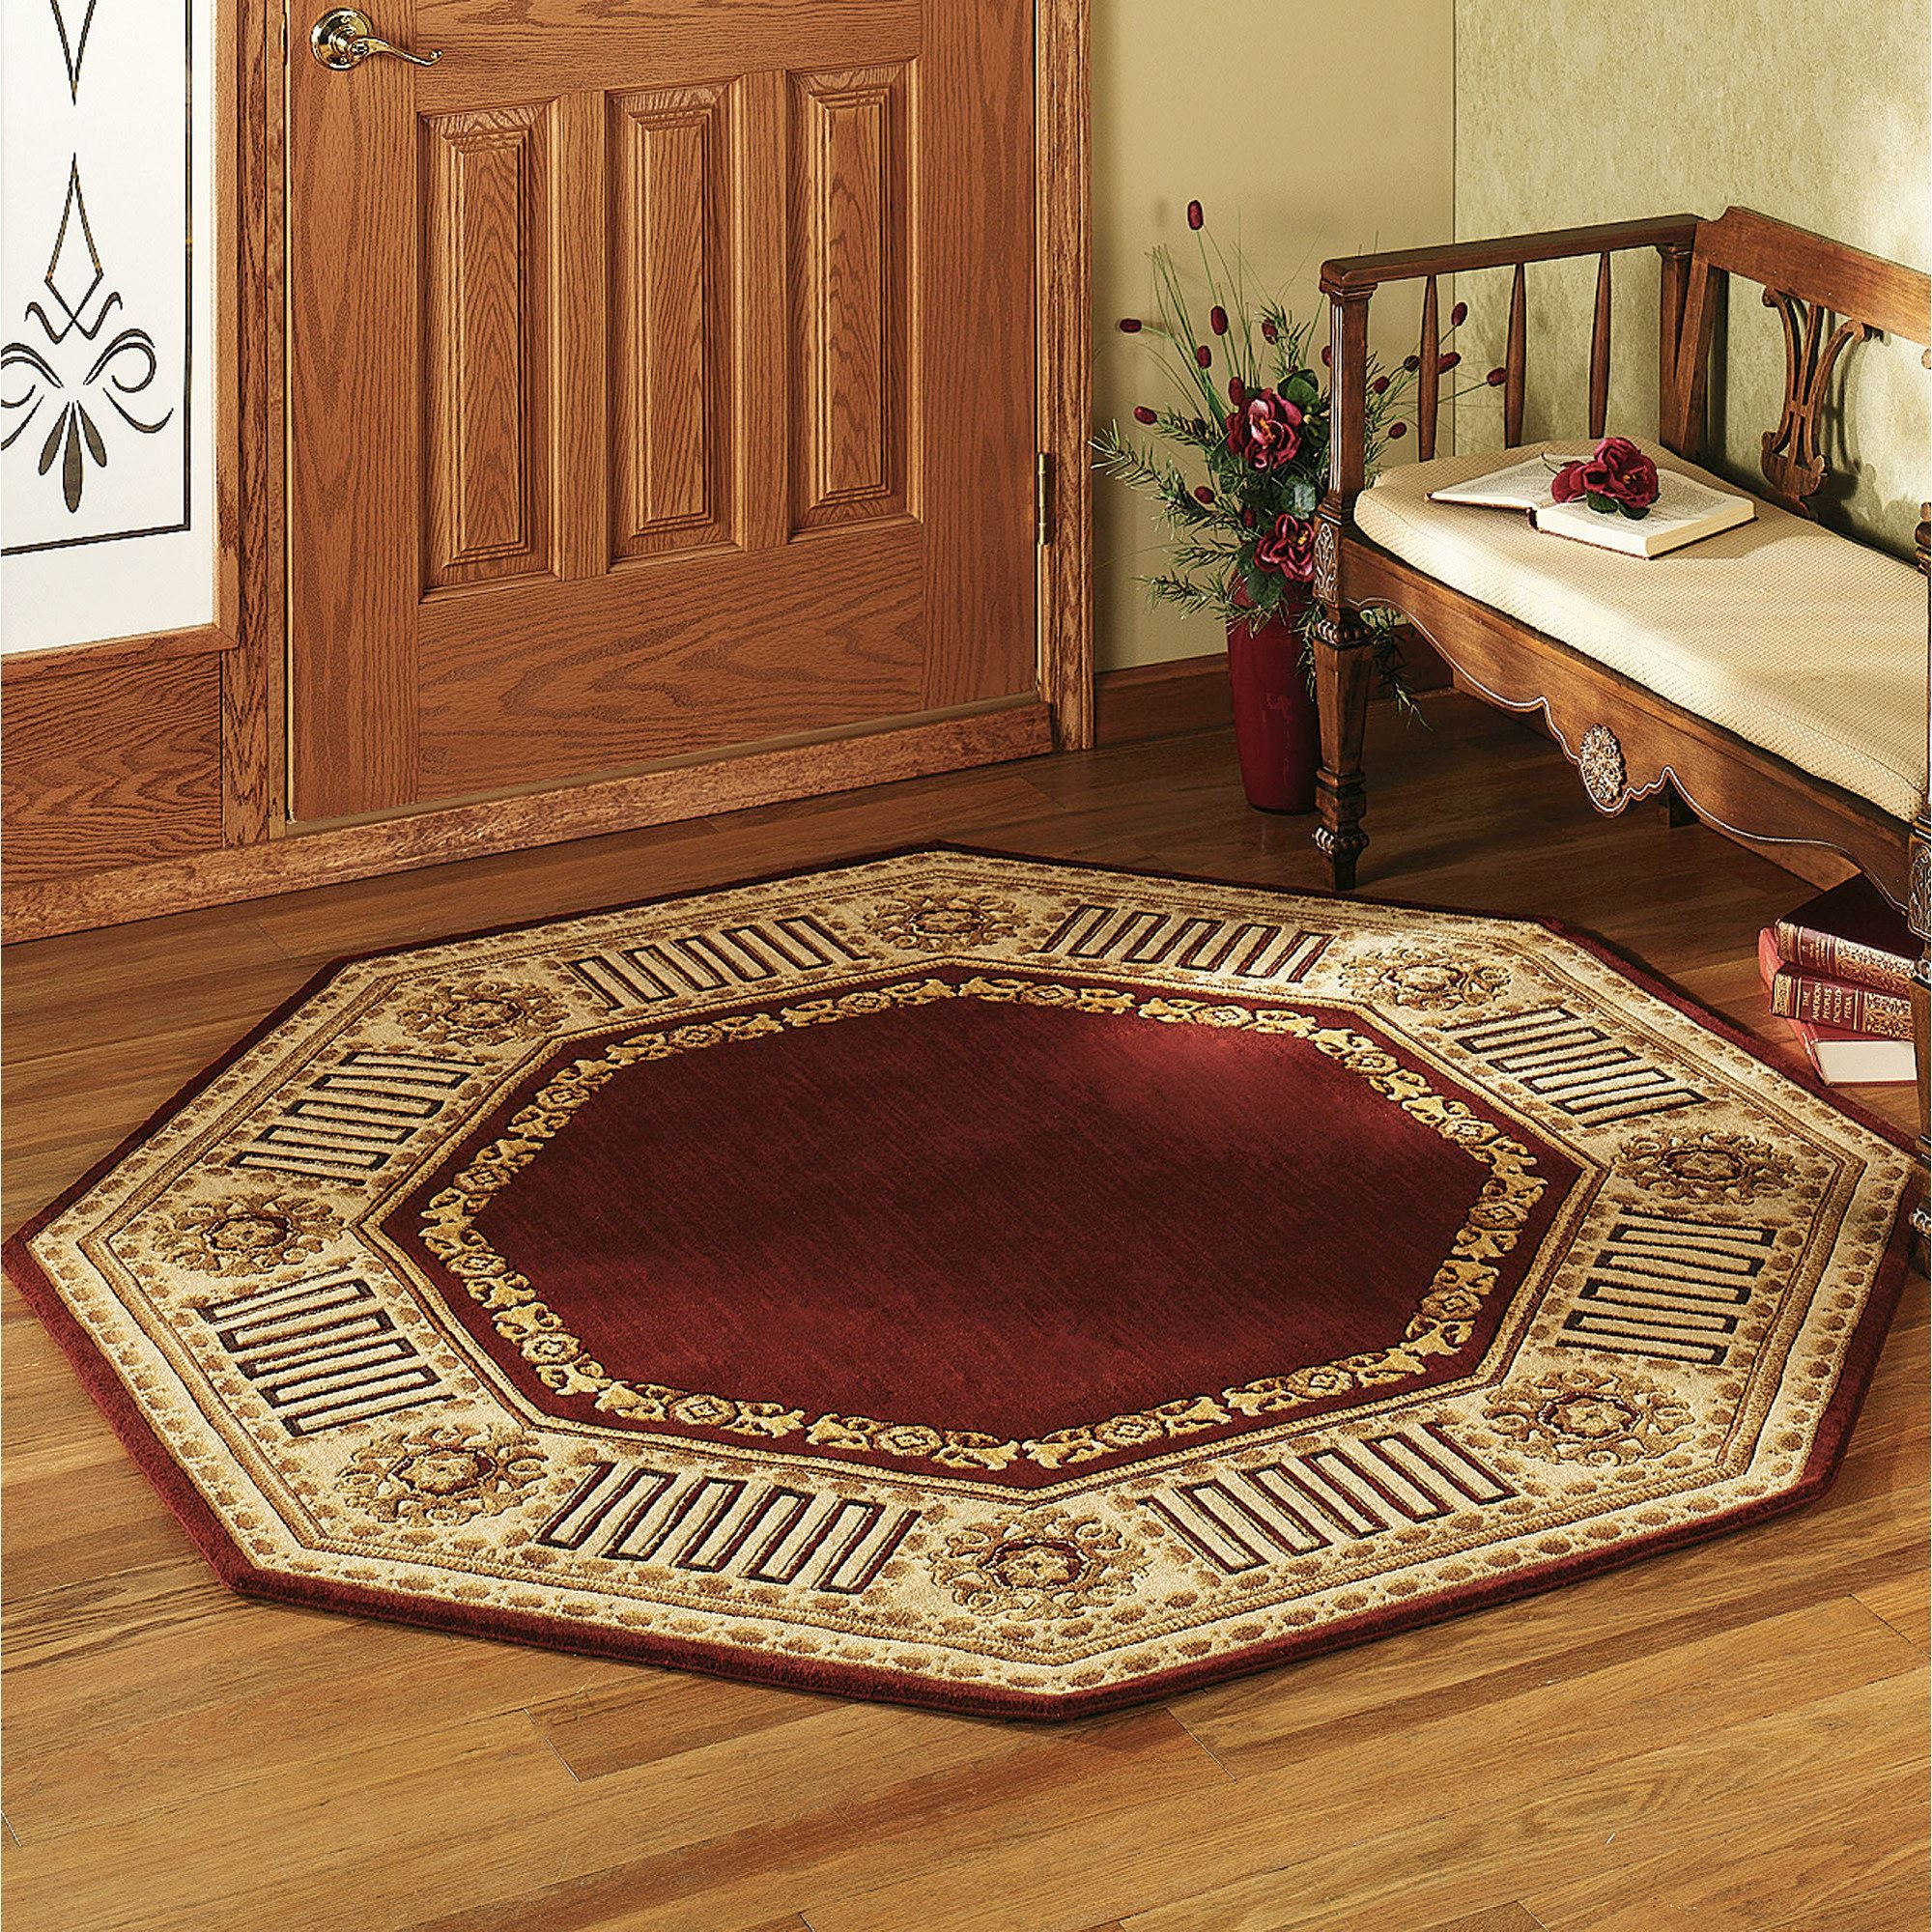 octagon rugs greek key octagonal rug UBUQEUP